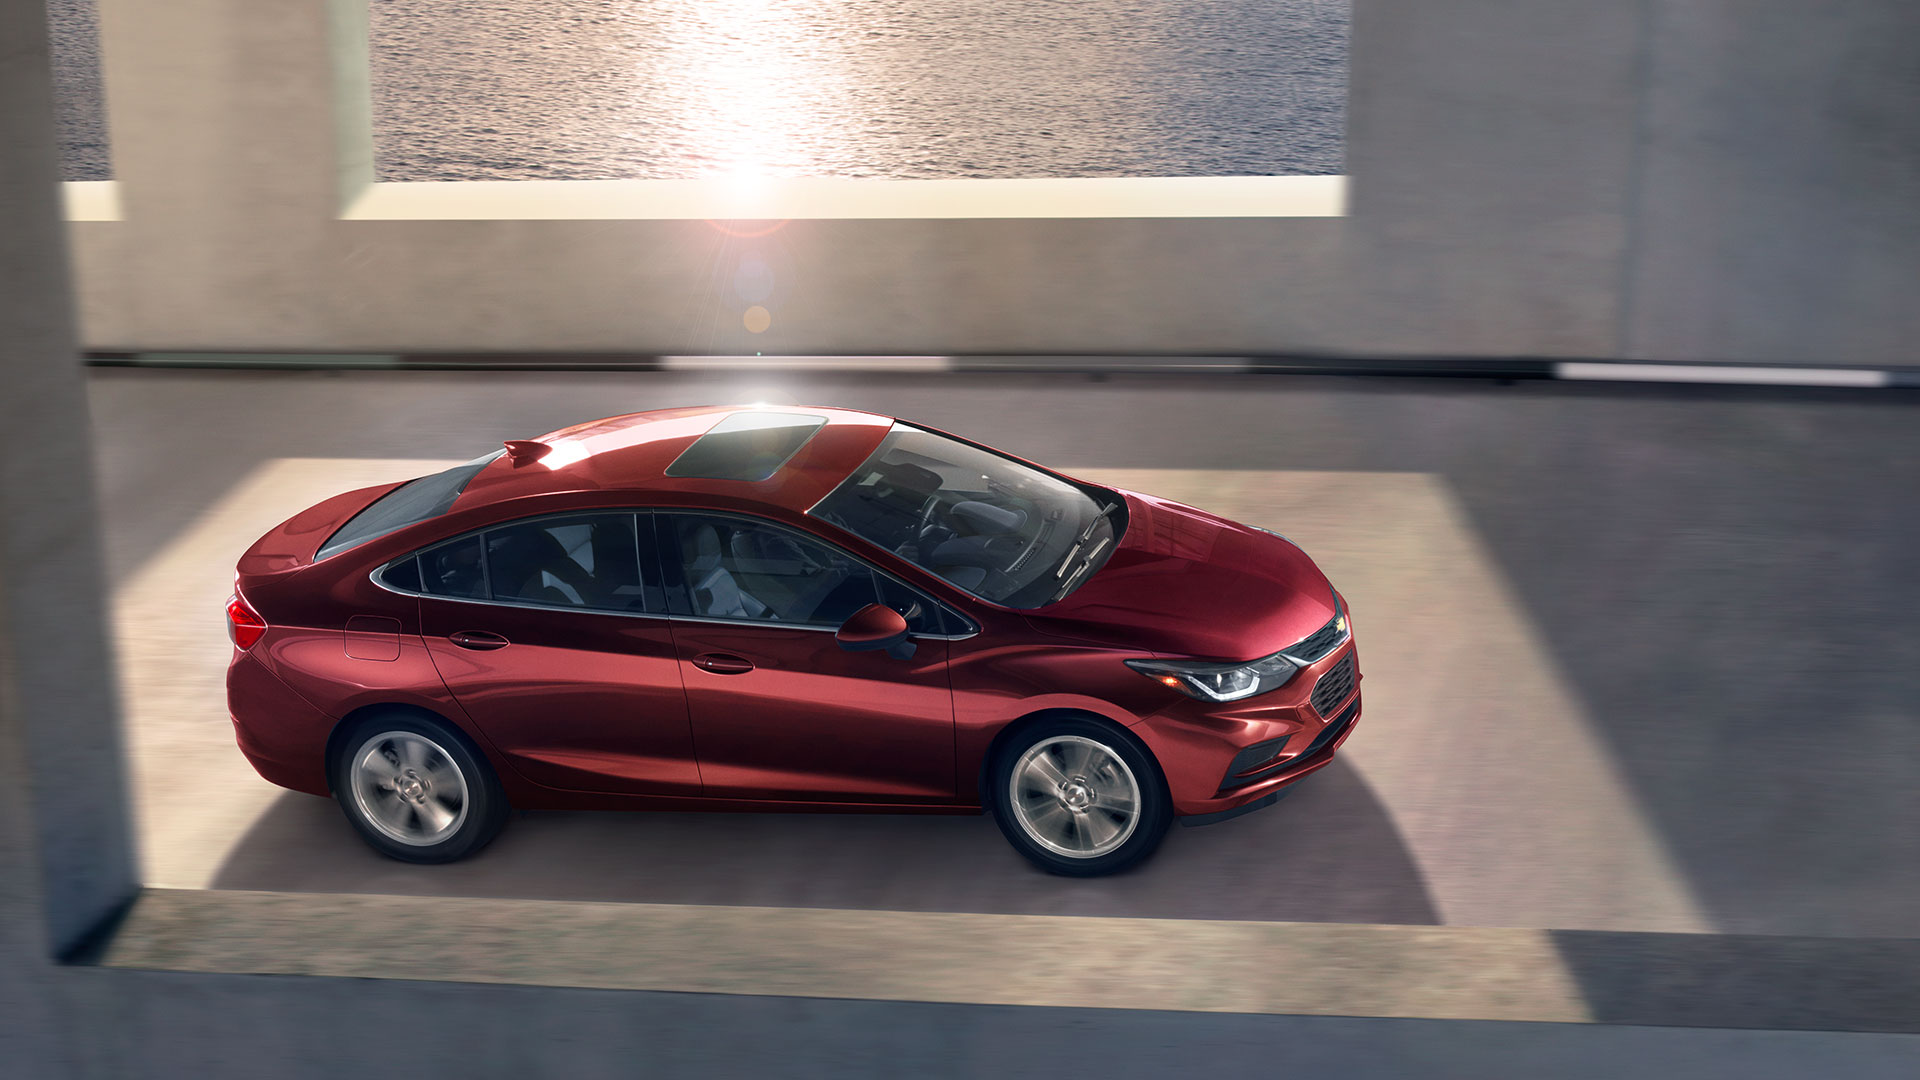 2017 Chevrolet Cruze Side Exterior Red